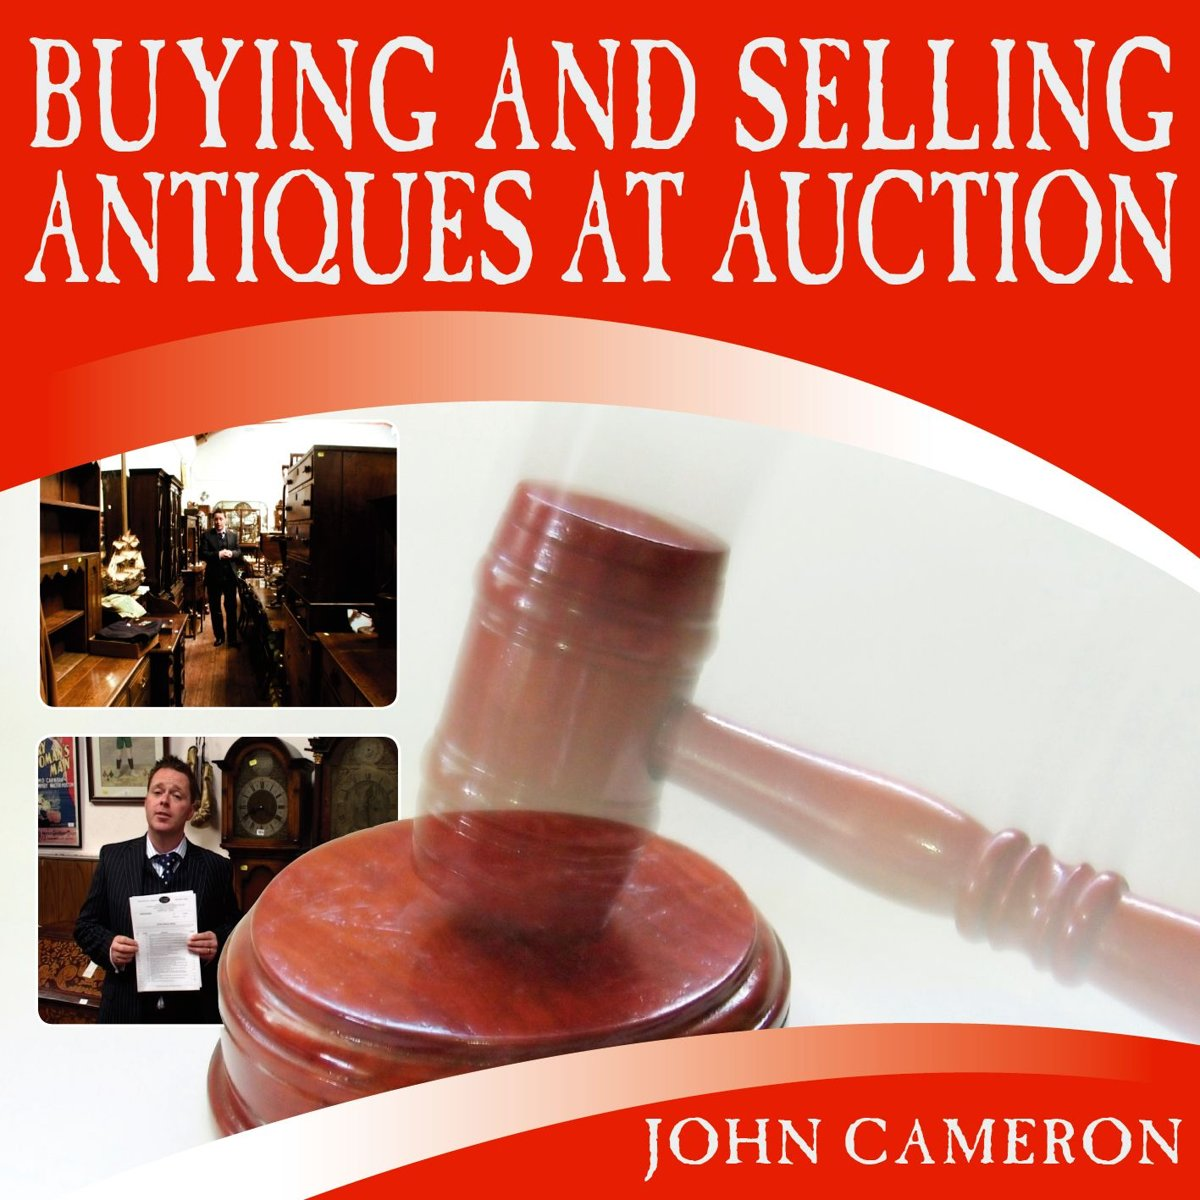 Buying and Selling Antiques at Auction